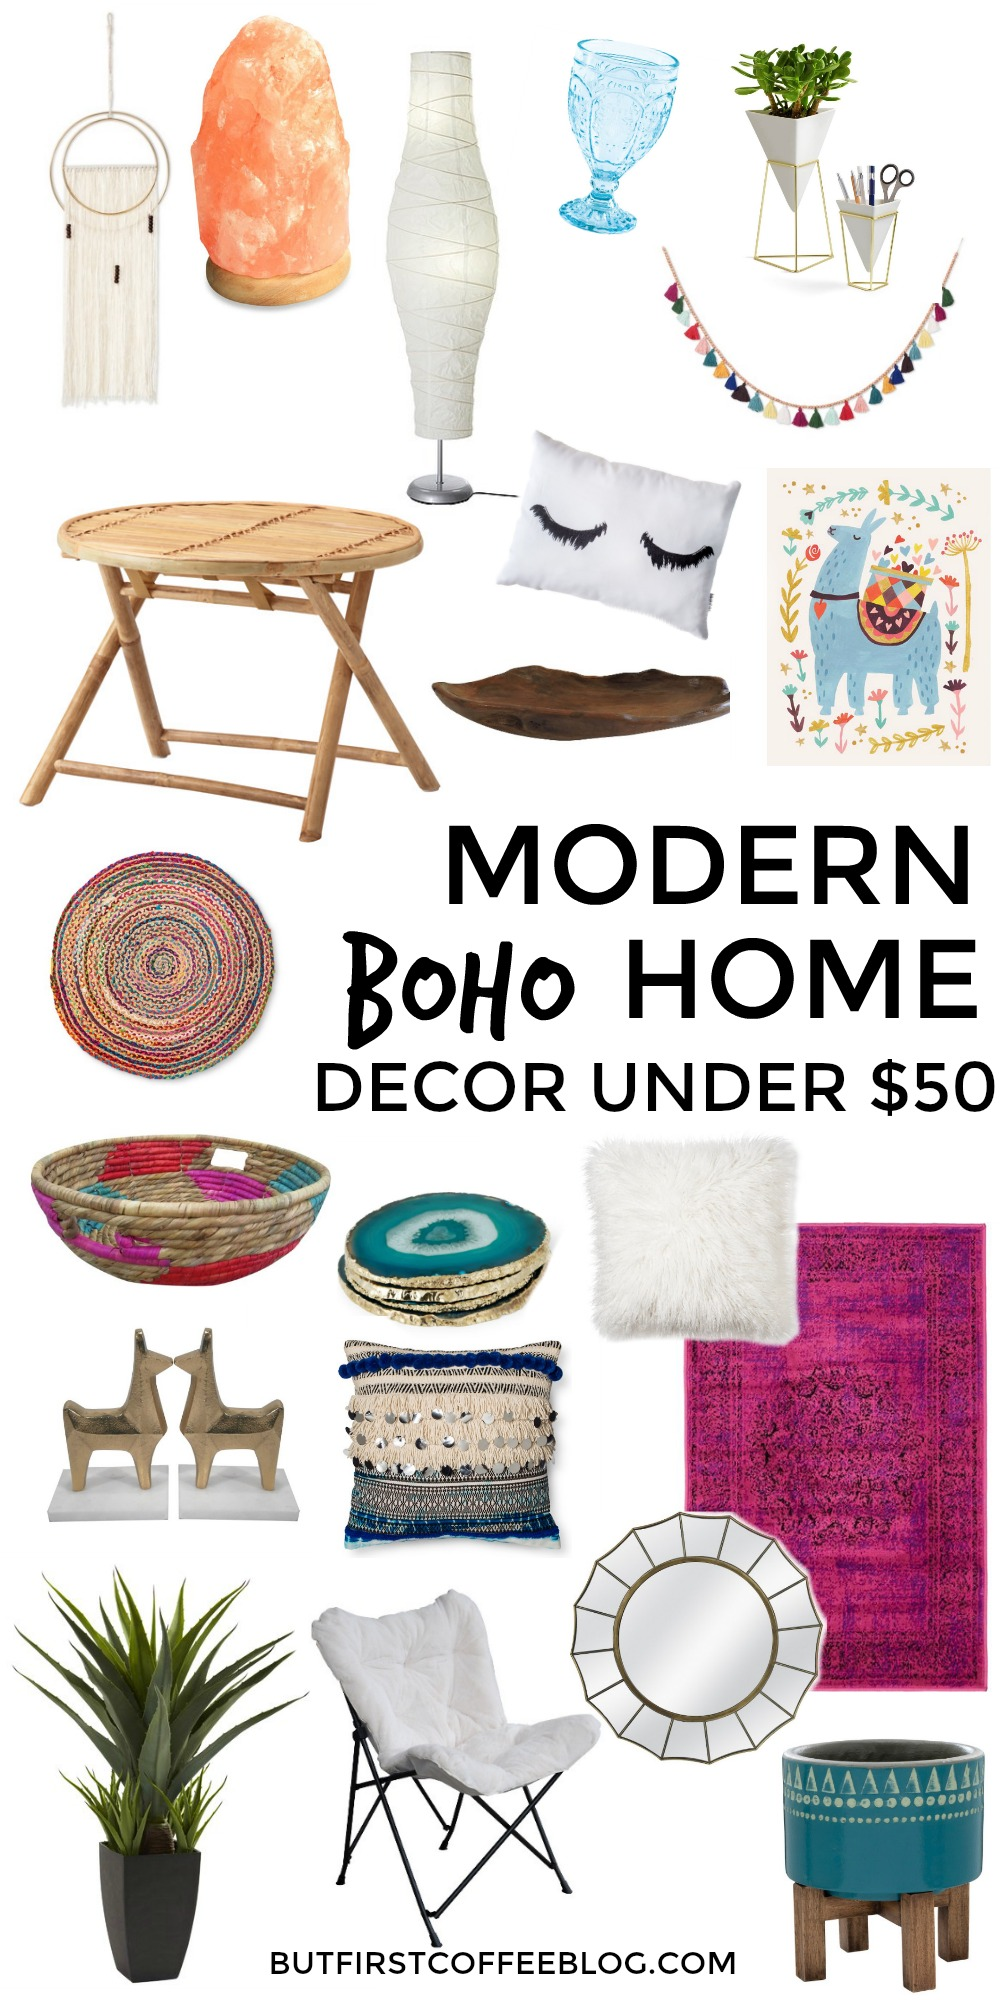 Modern Boho Home Decor That You Can Get for Under $50 on Boho Modern Decor  id=70504